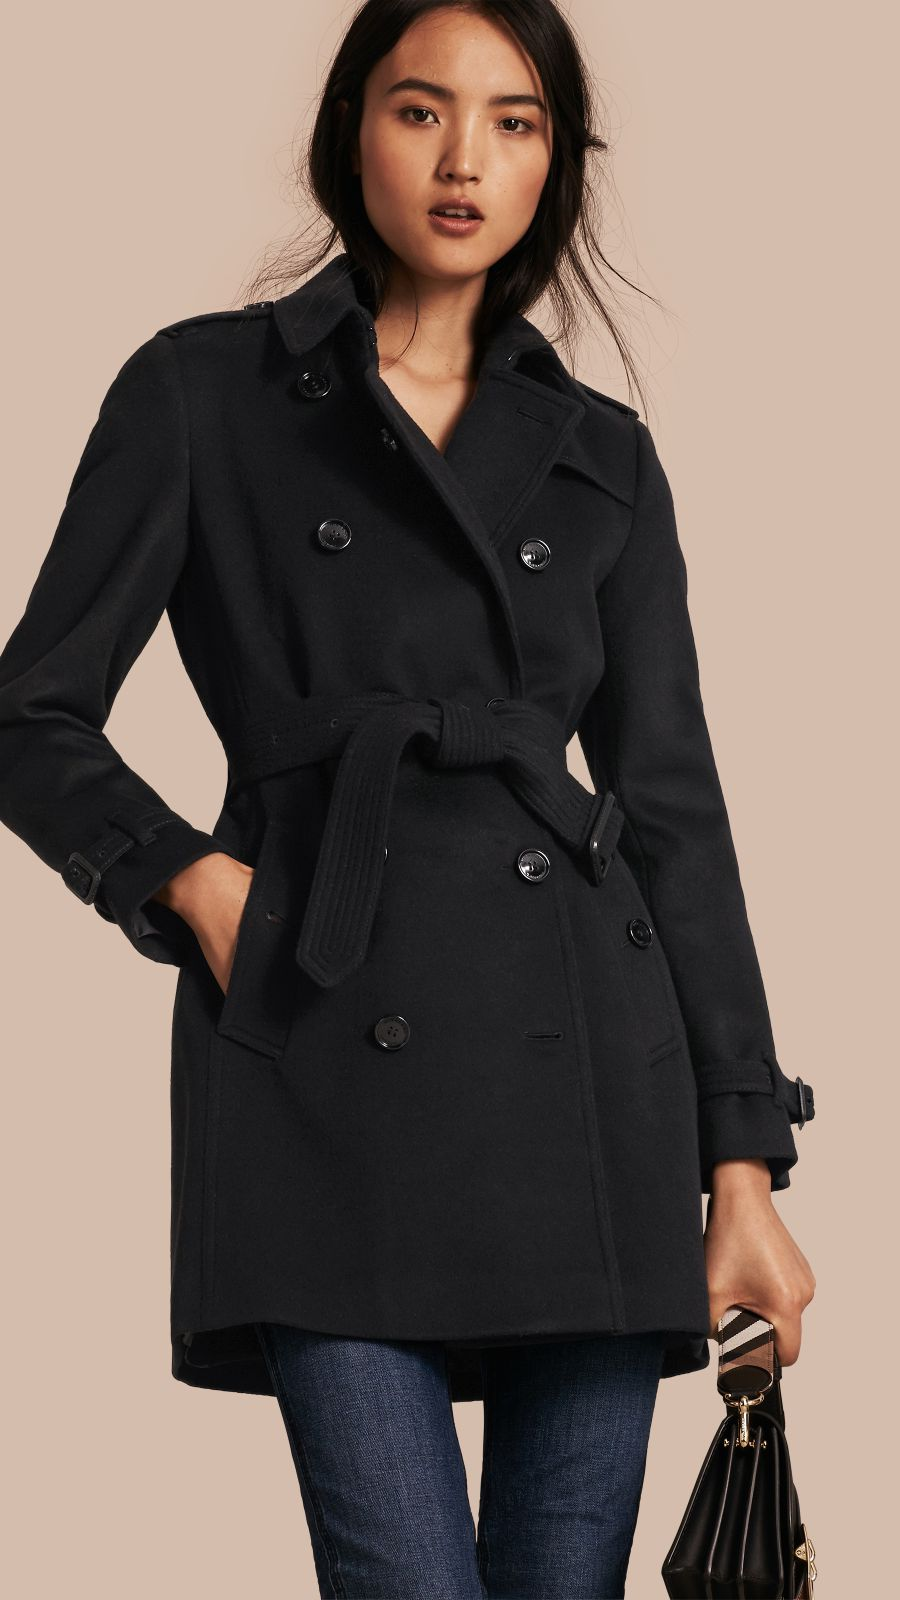 Black Virgin Wool Cashmere Trench Coat - Image 1